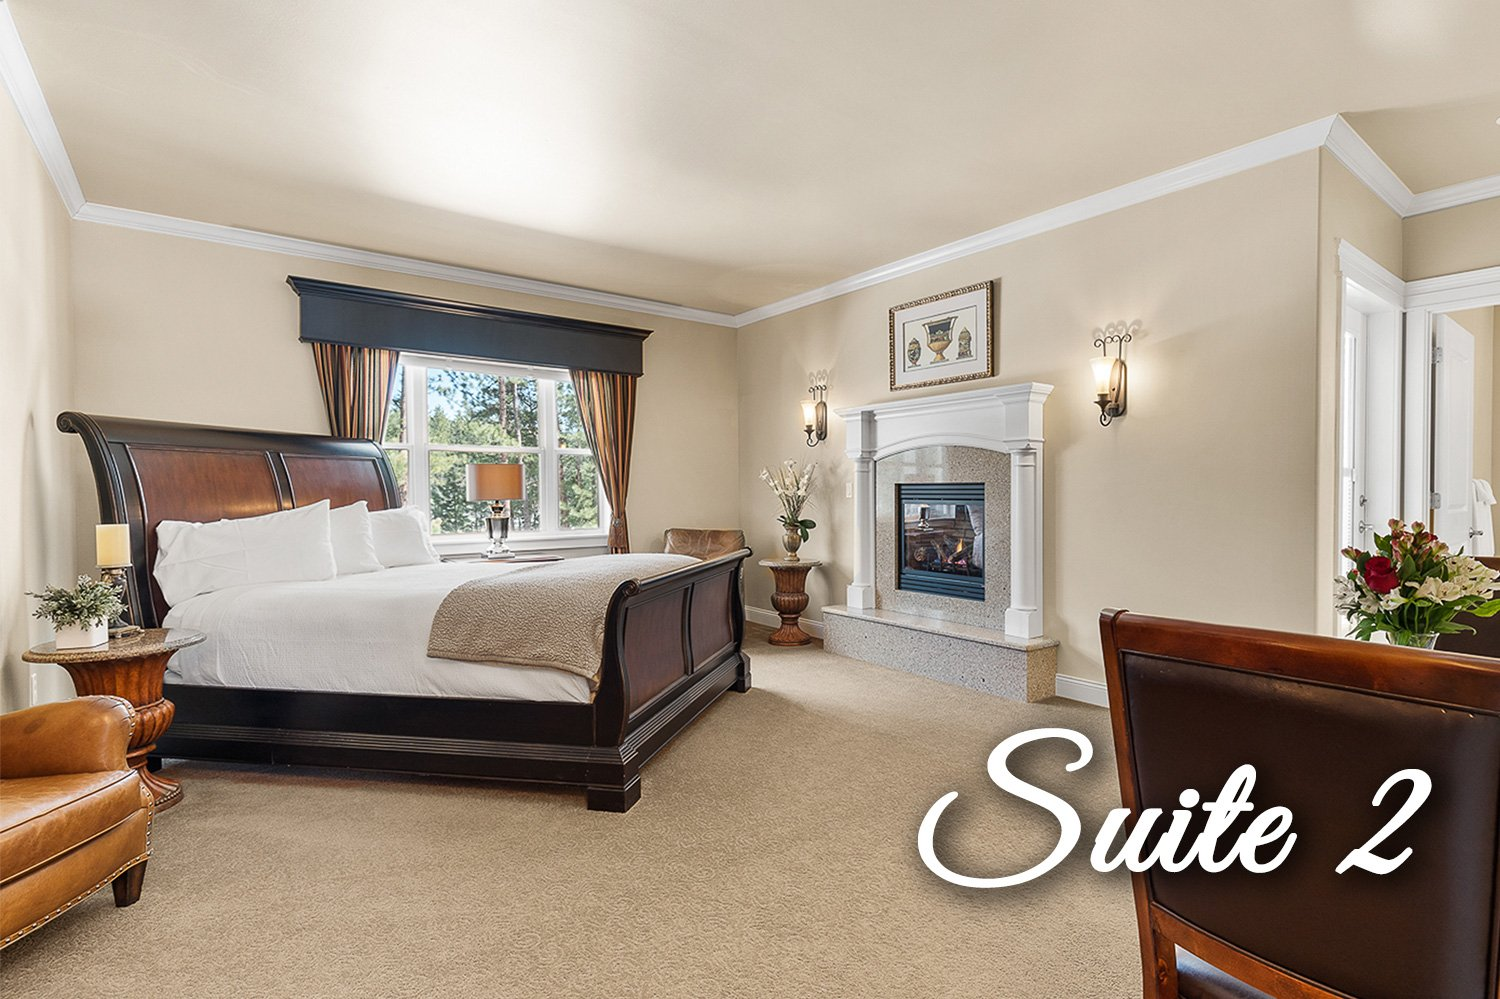 Suite 2 Bed and fireplace with chairs